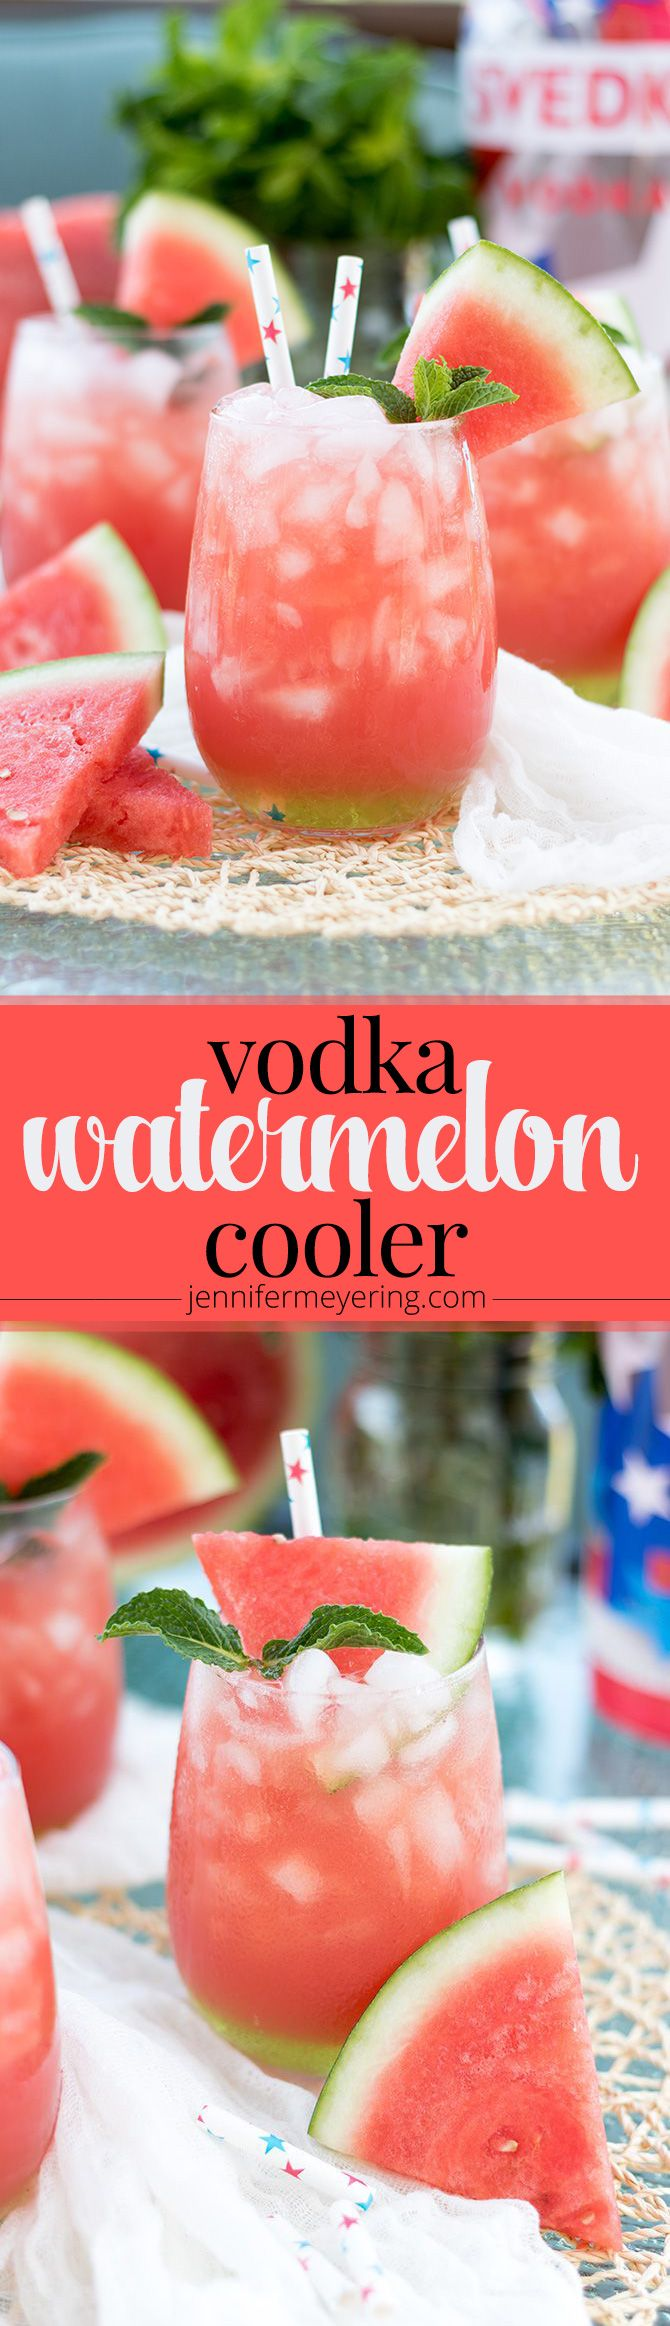 Vodka Watermelon Cooler - JenniferMeyering.com